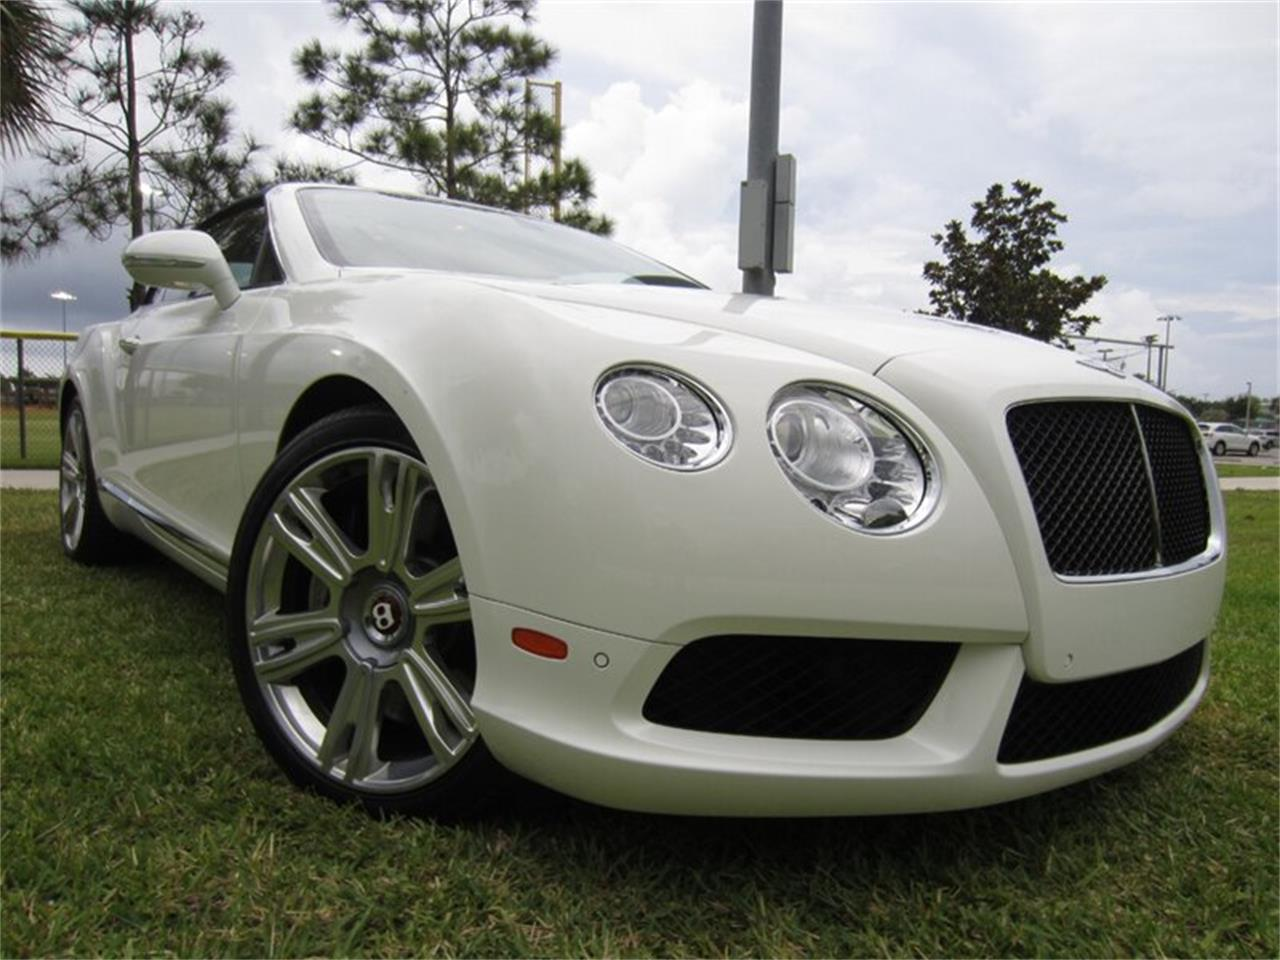 Large Picture of '13 Bentley Continental GTC V8 located in Delray Beach Florida - $102,400.00 - Q2NI